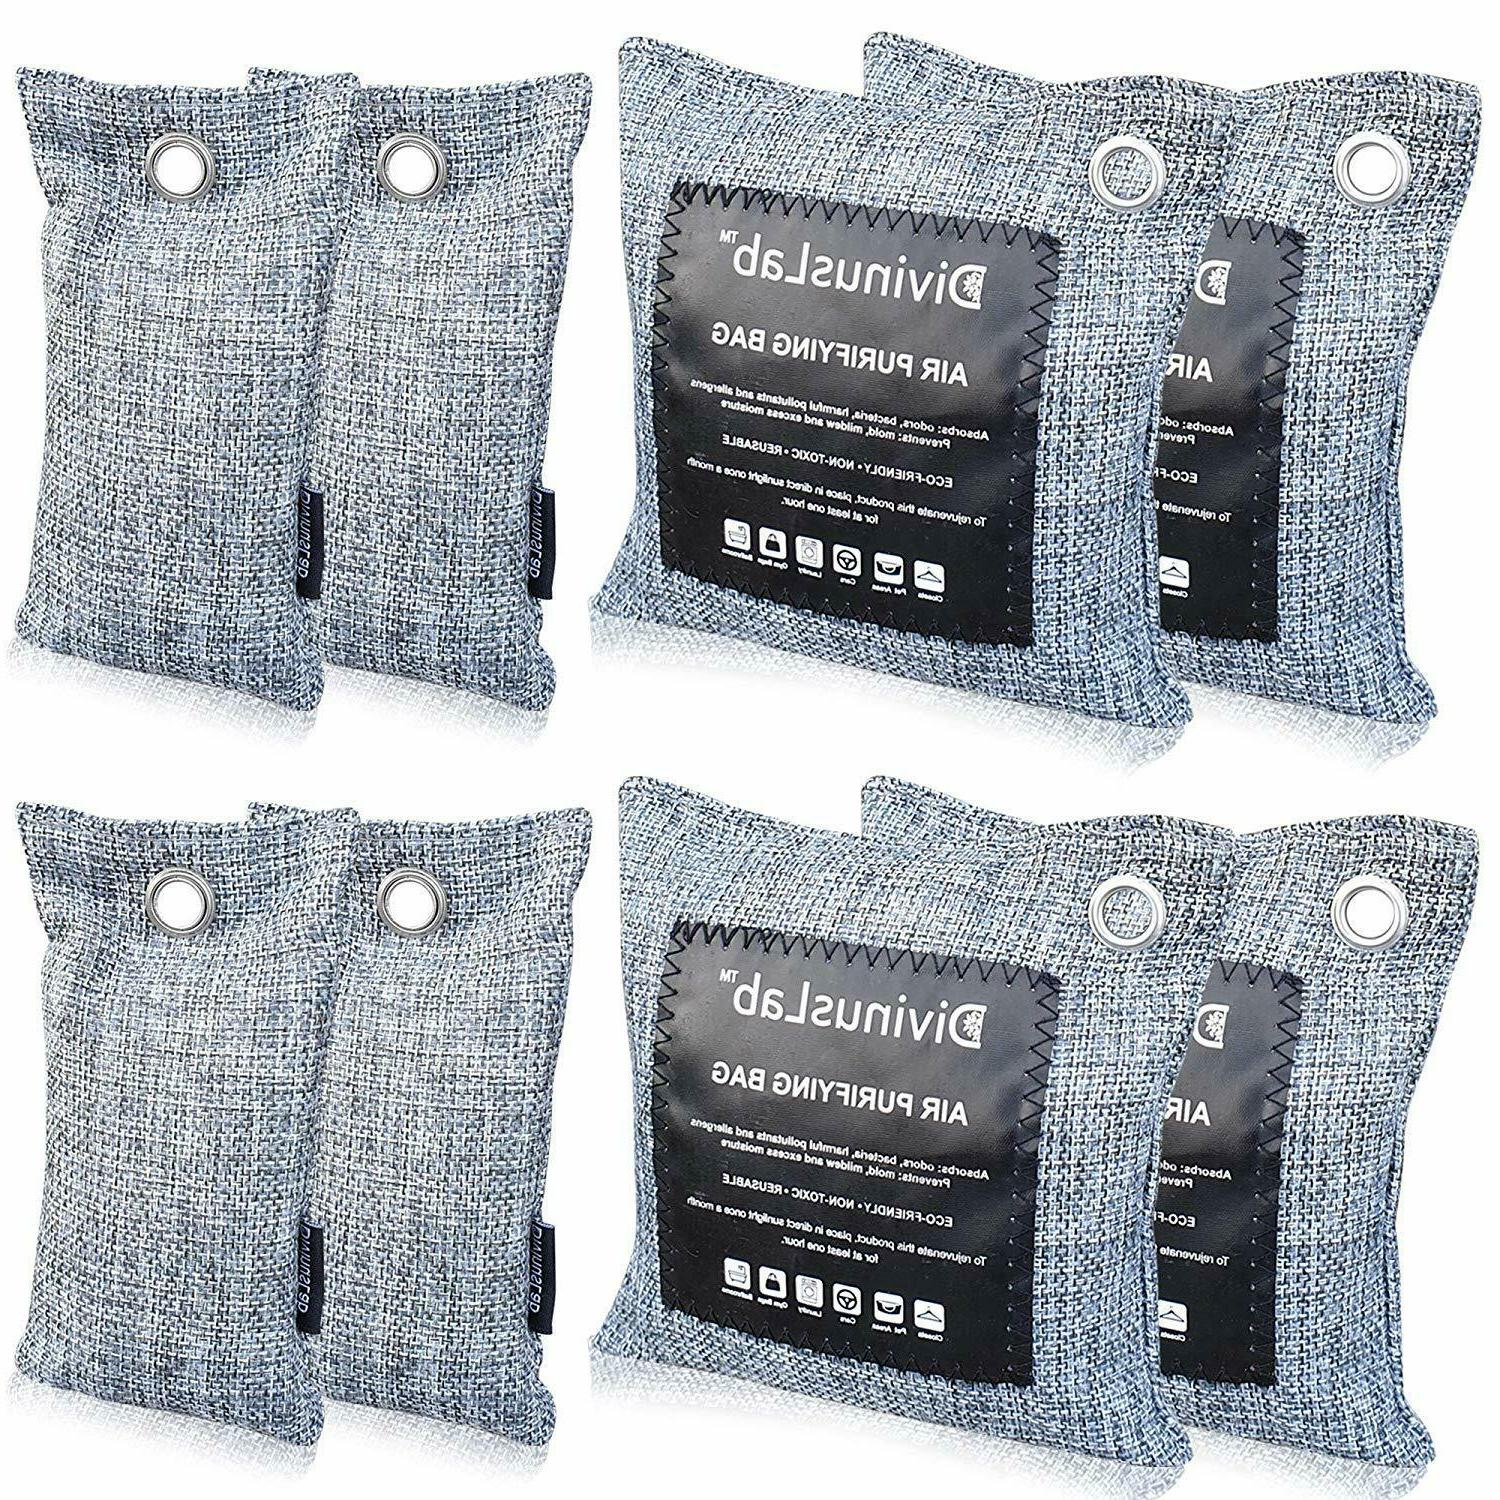 bamboo charcoal air purifying bags 8 pack